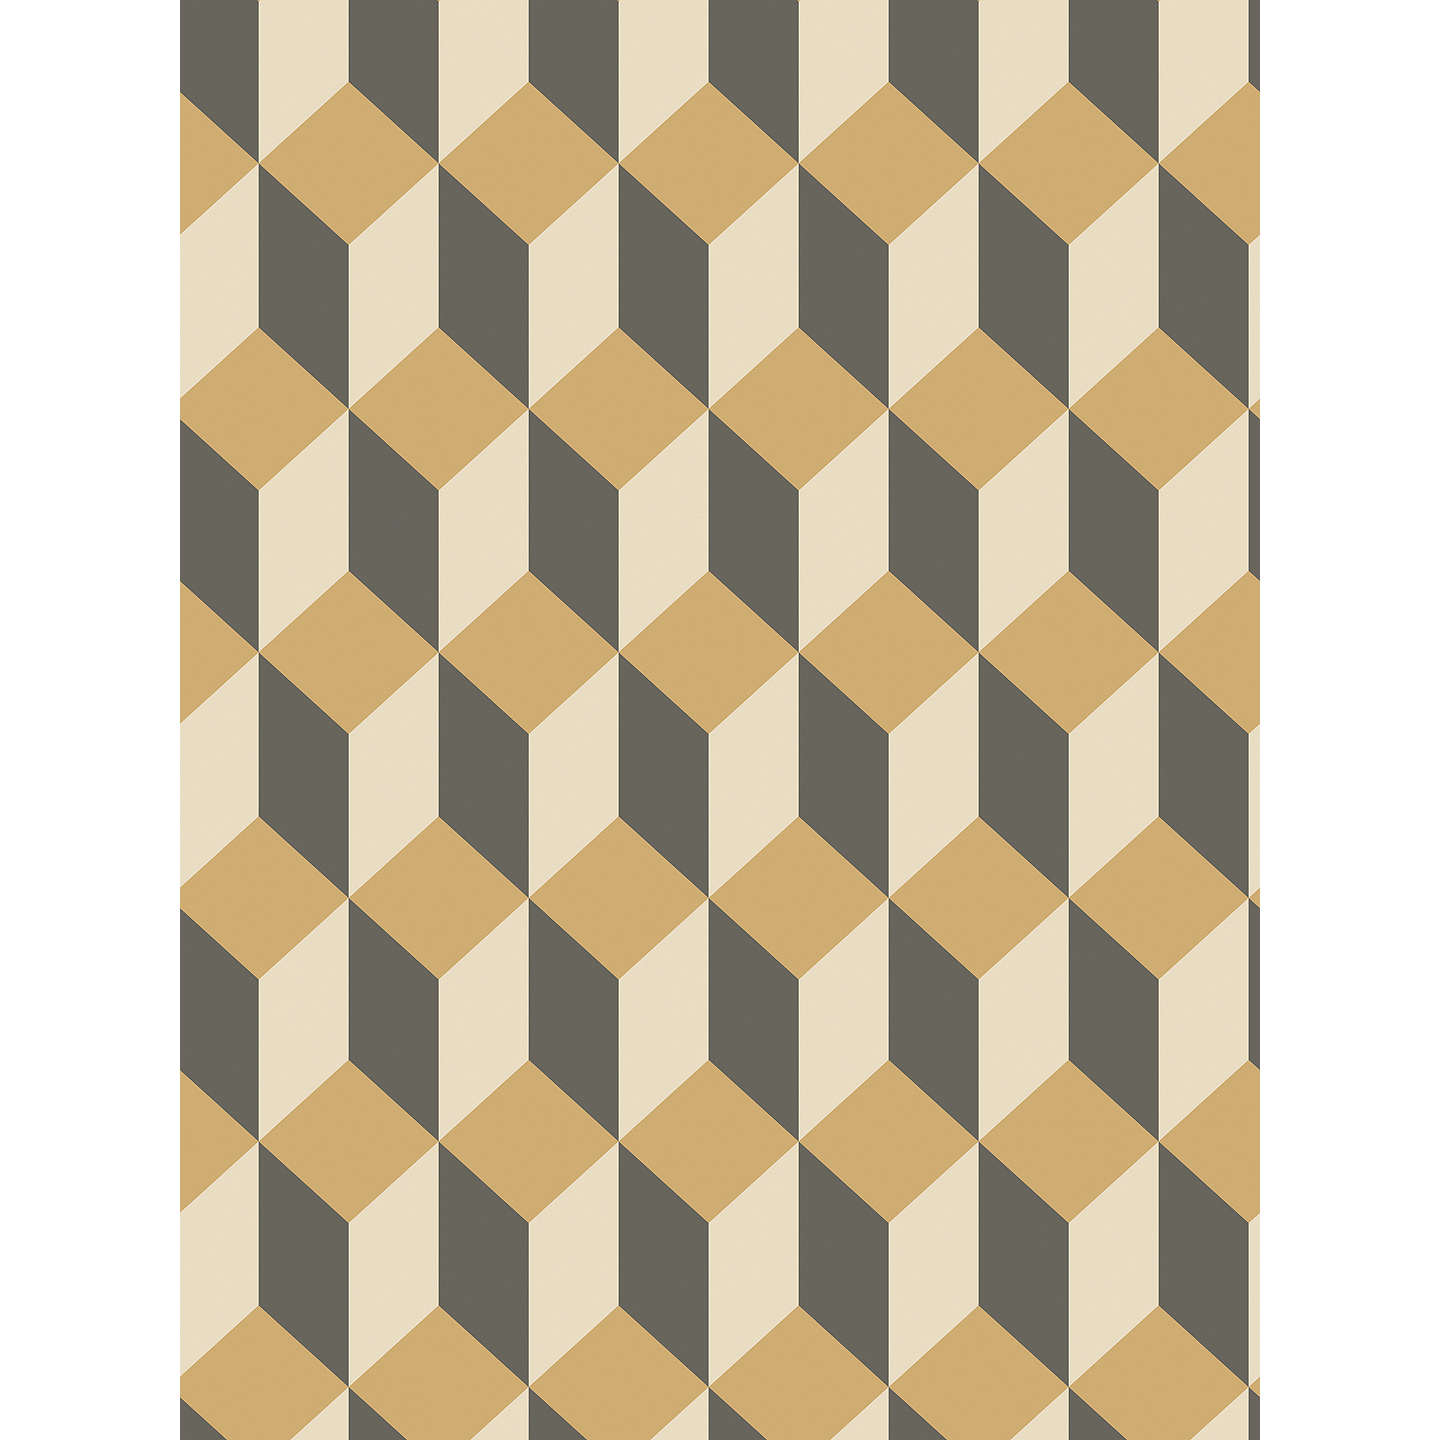 Cole Son Deco Delano Wallpaper At John Lewis